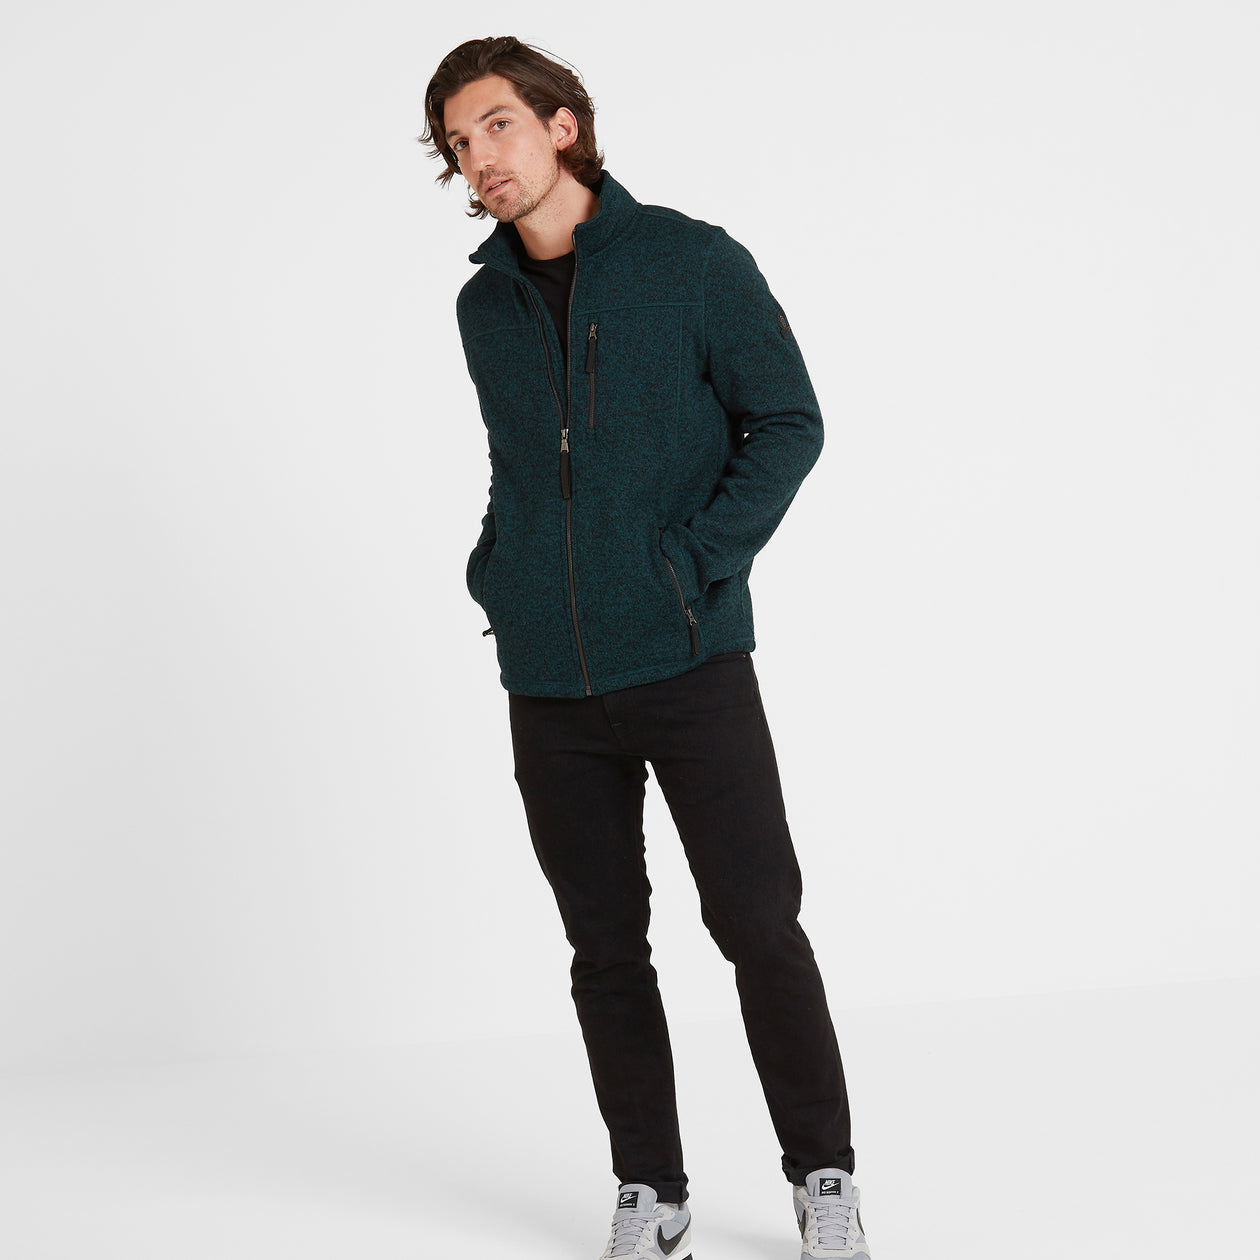 Garton Mens Knitlook Fleece Jacket Forest Marl image 4